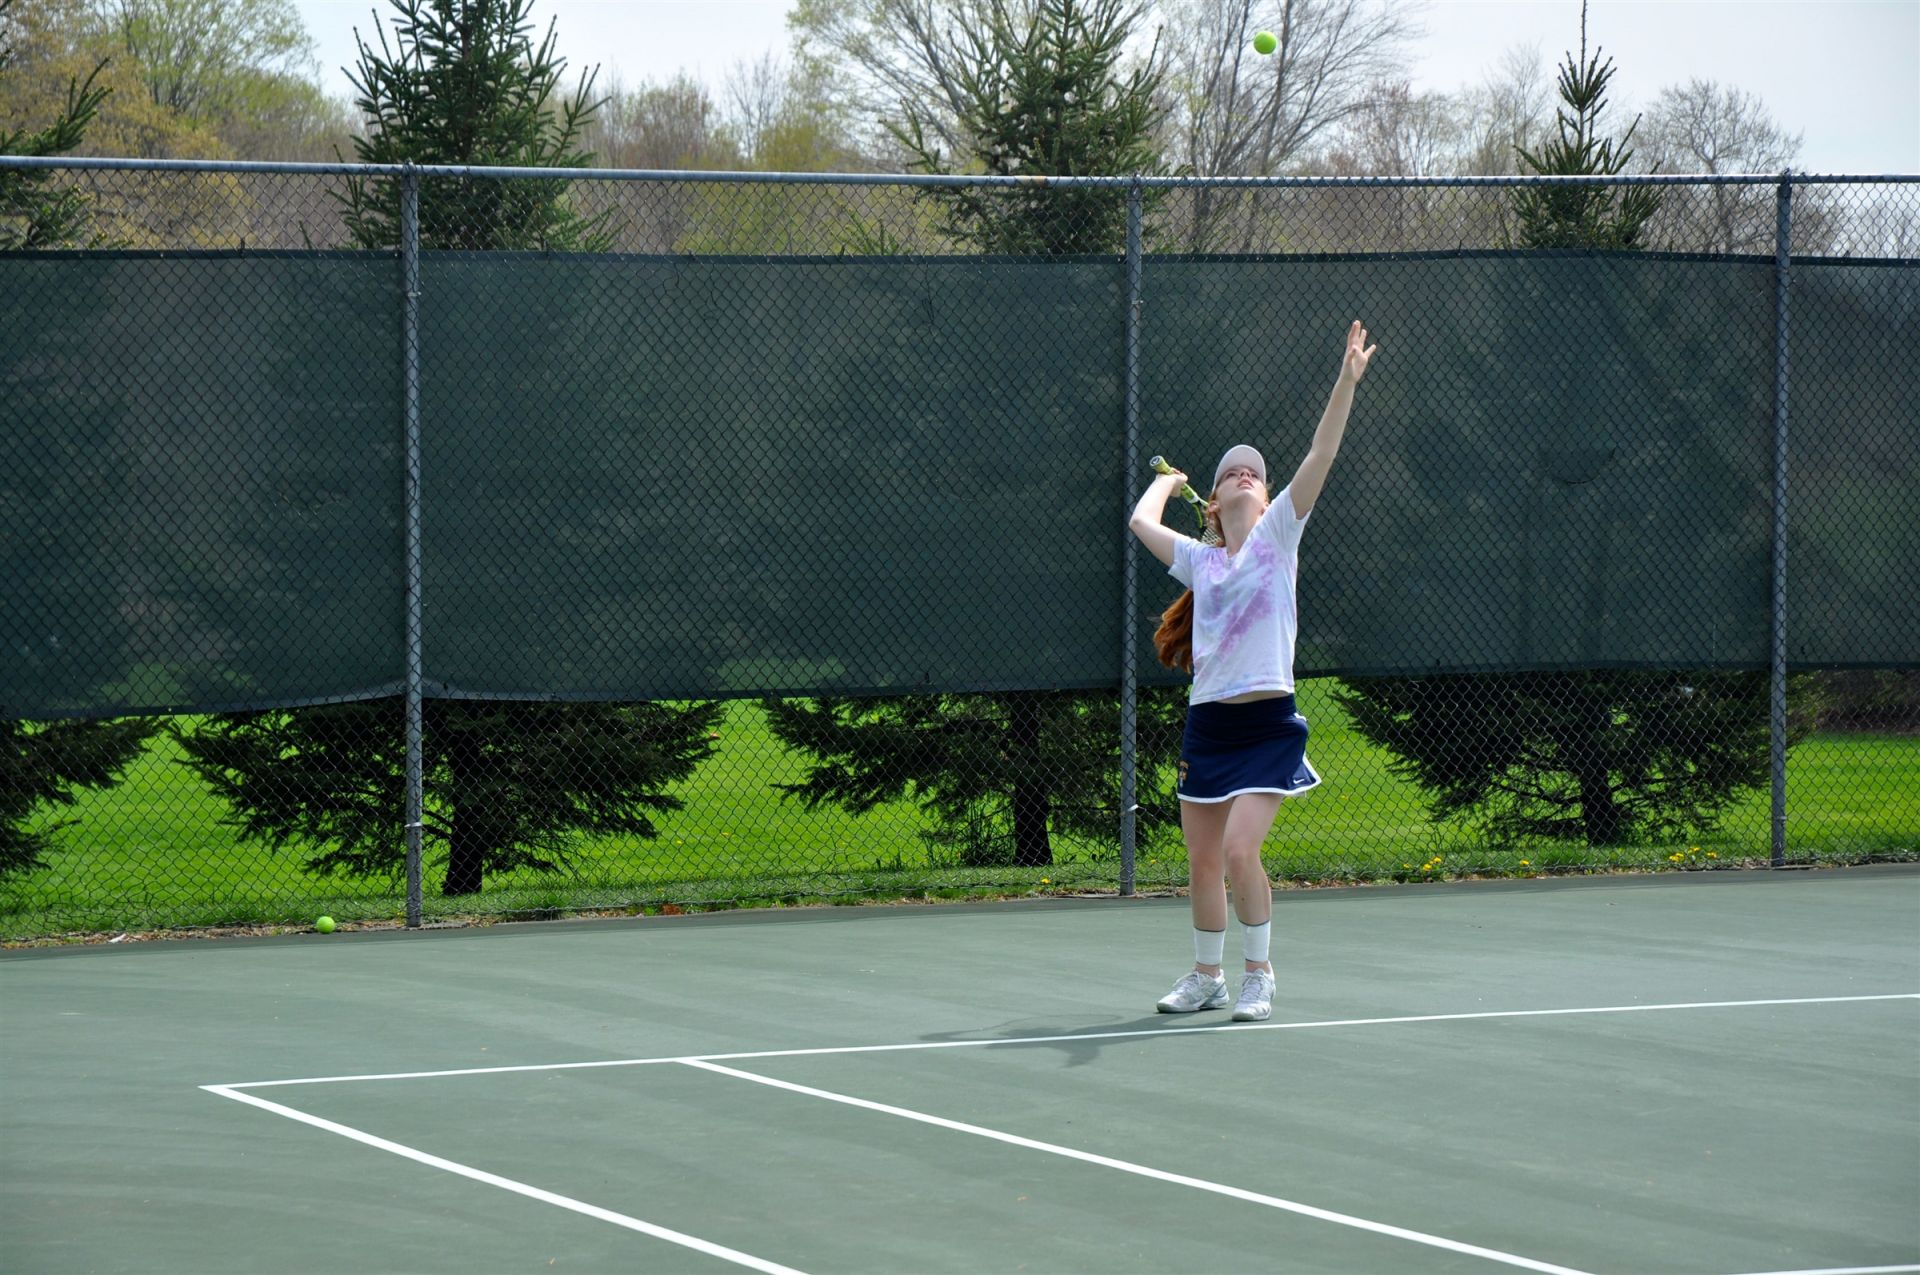 Cheshire Academy has two sets of full tennis courts, perfect for girls and boys varsity and JV teams to practice on. One set of courts is located across from the pond; the other is located by the Cross Country trail.